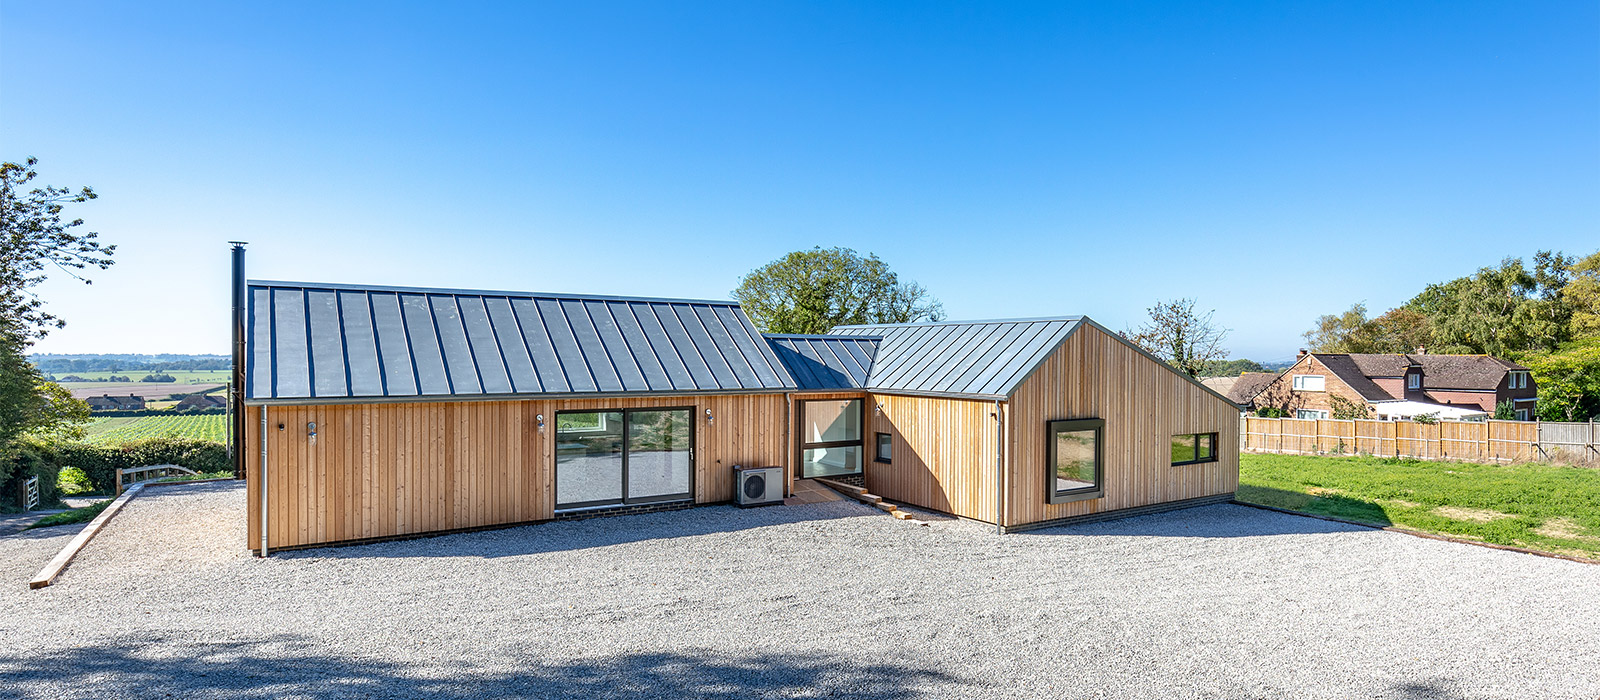 gyd architecture   new house with natural material finishes